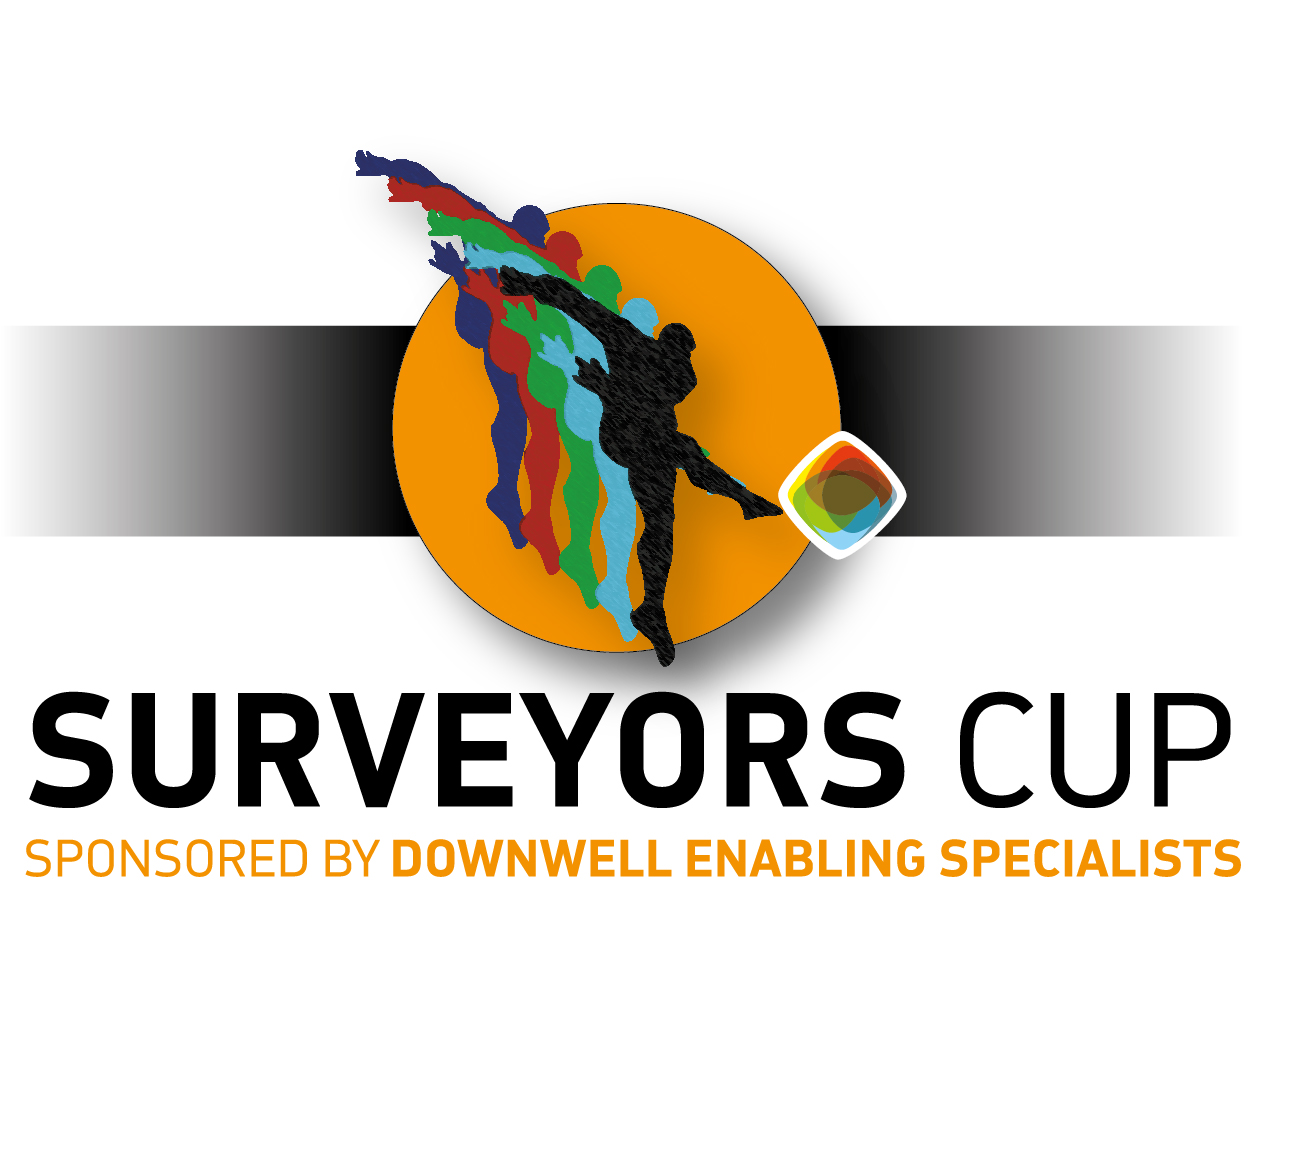 SURVEYORS CUP